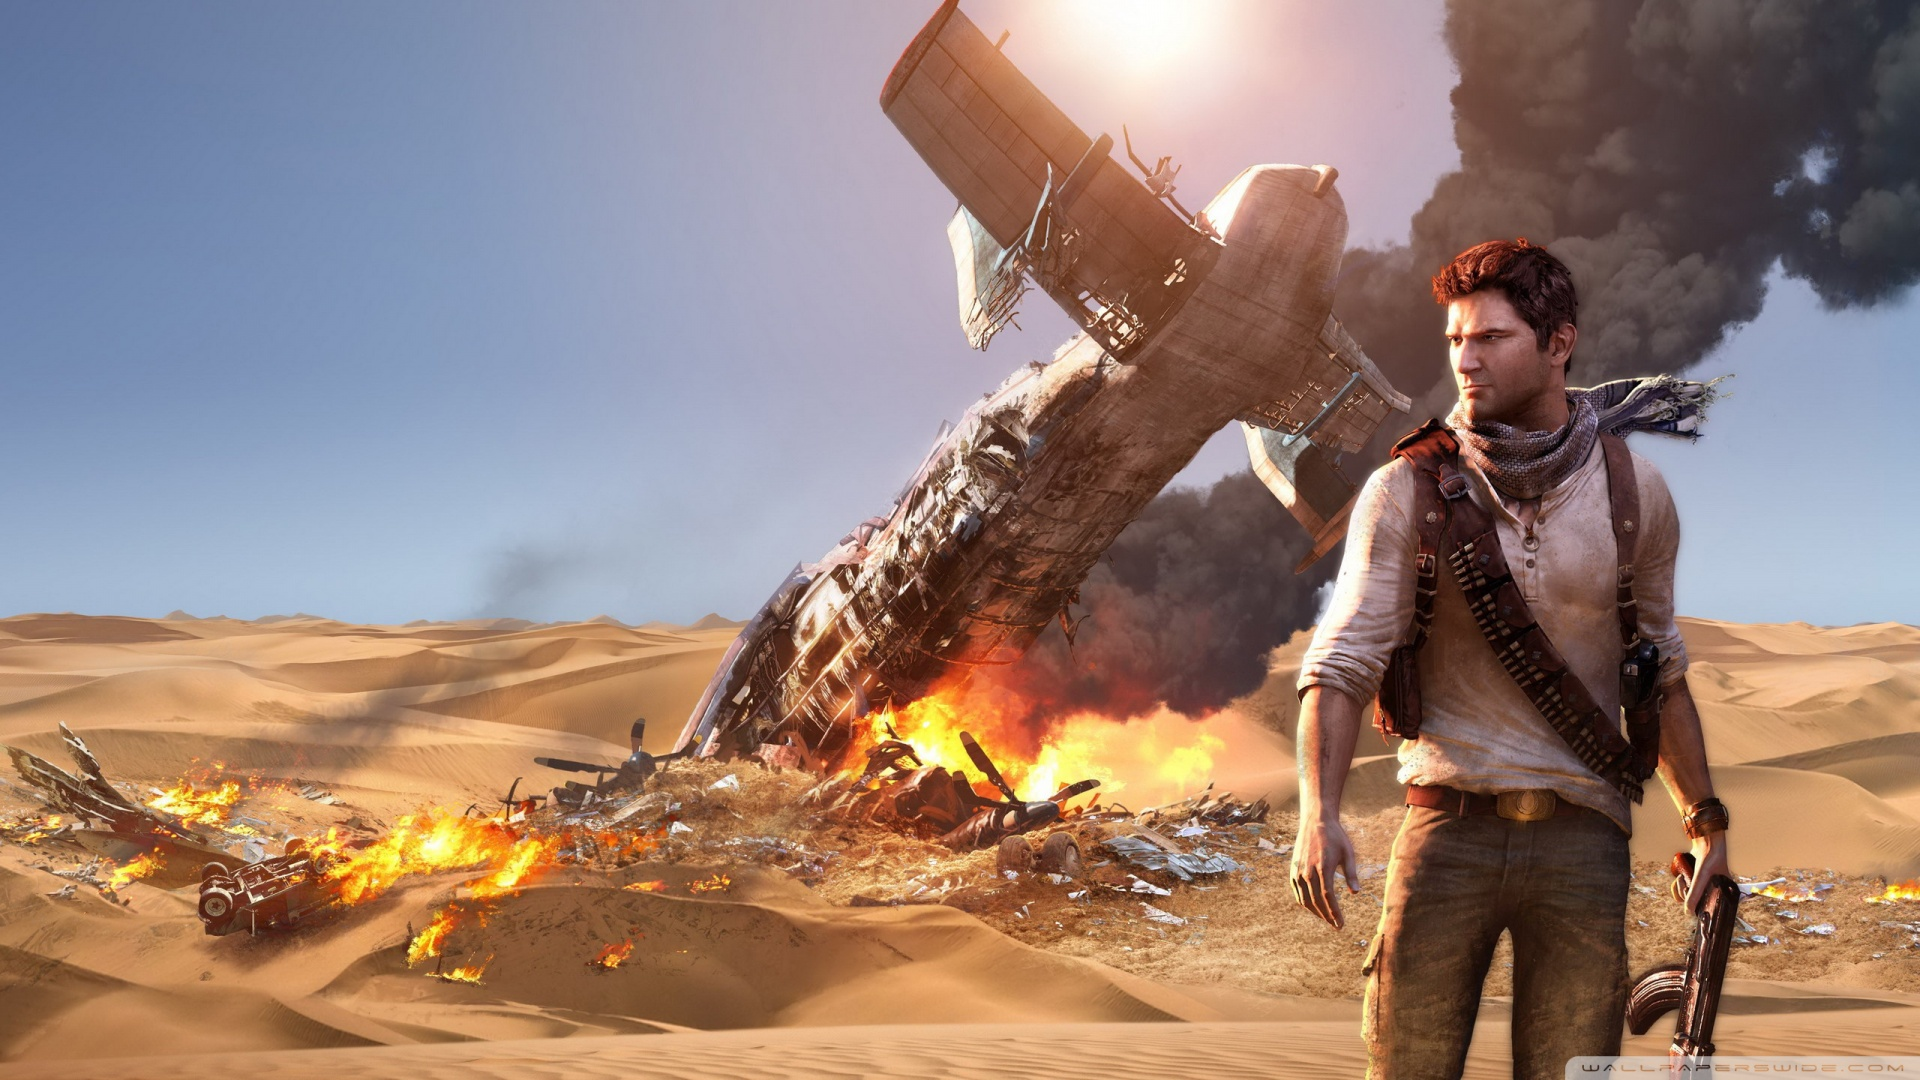 Il film di #Uncharted ha finalmente una sceneggiatura! #Uncharted4